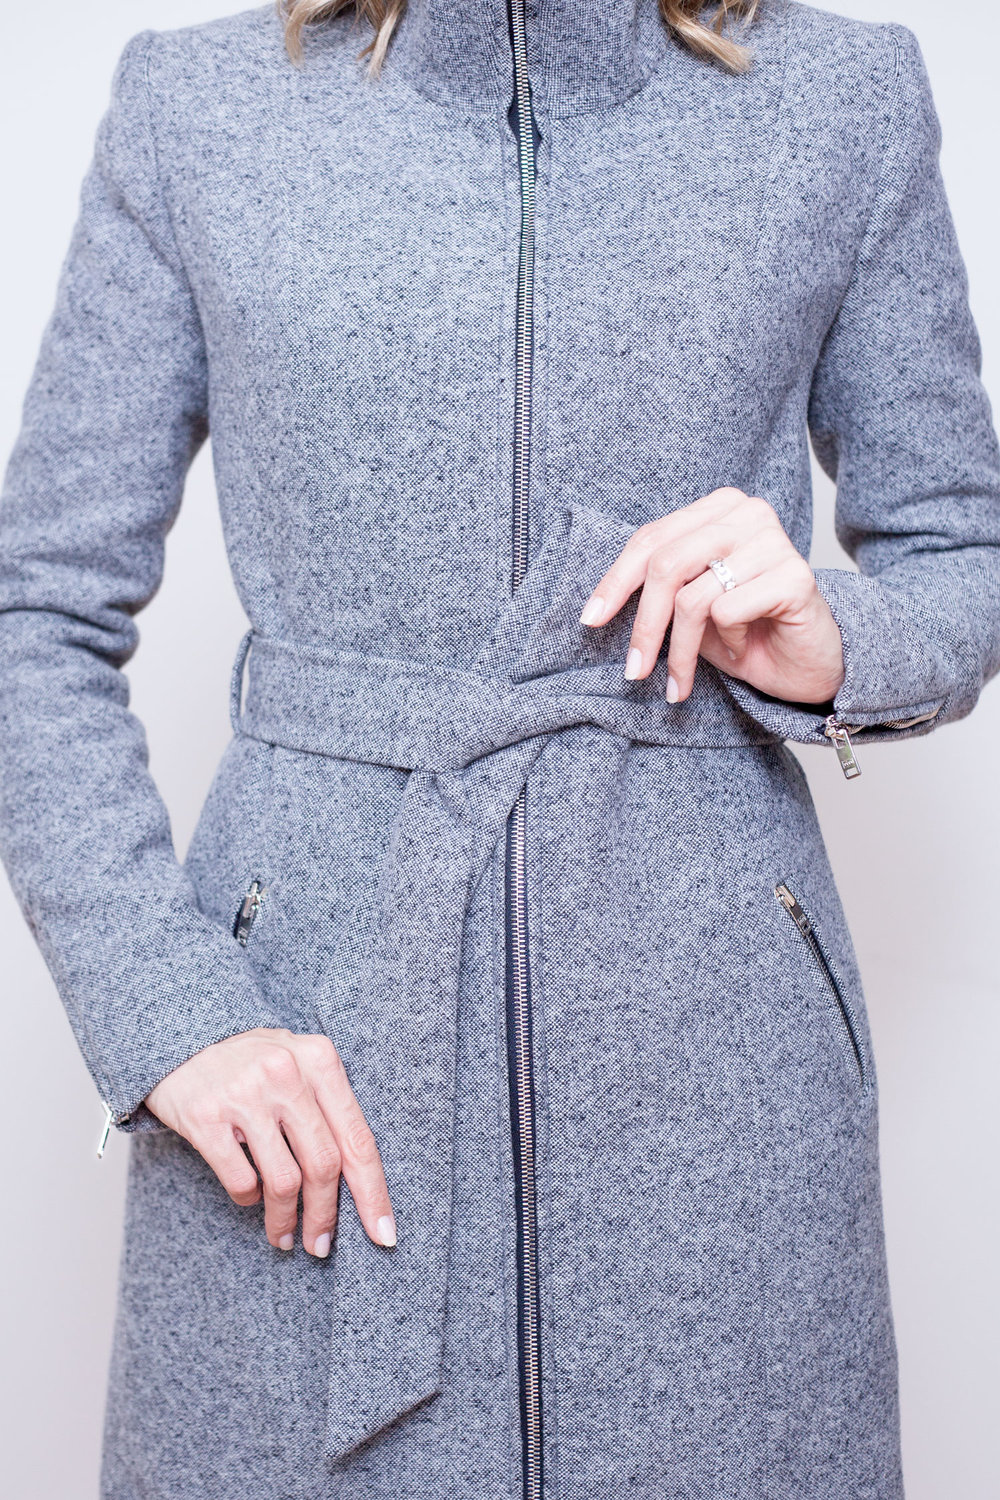 Belt-Grey-Zipper-Coat.jpg